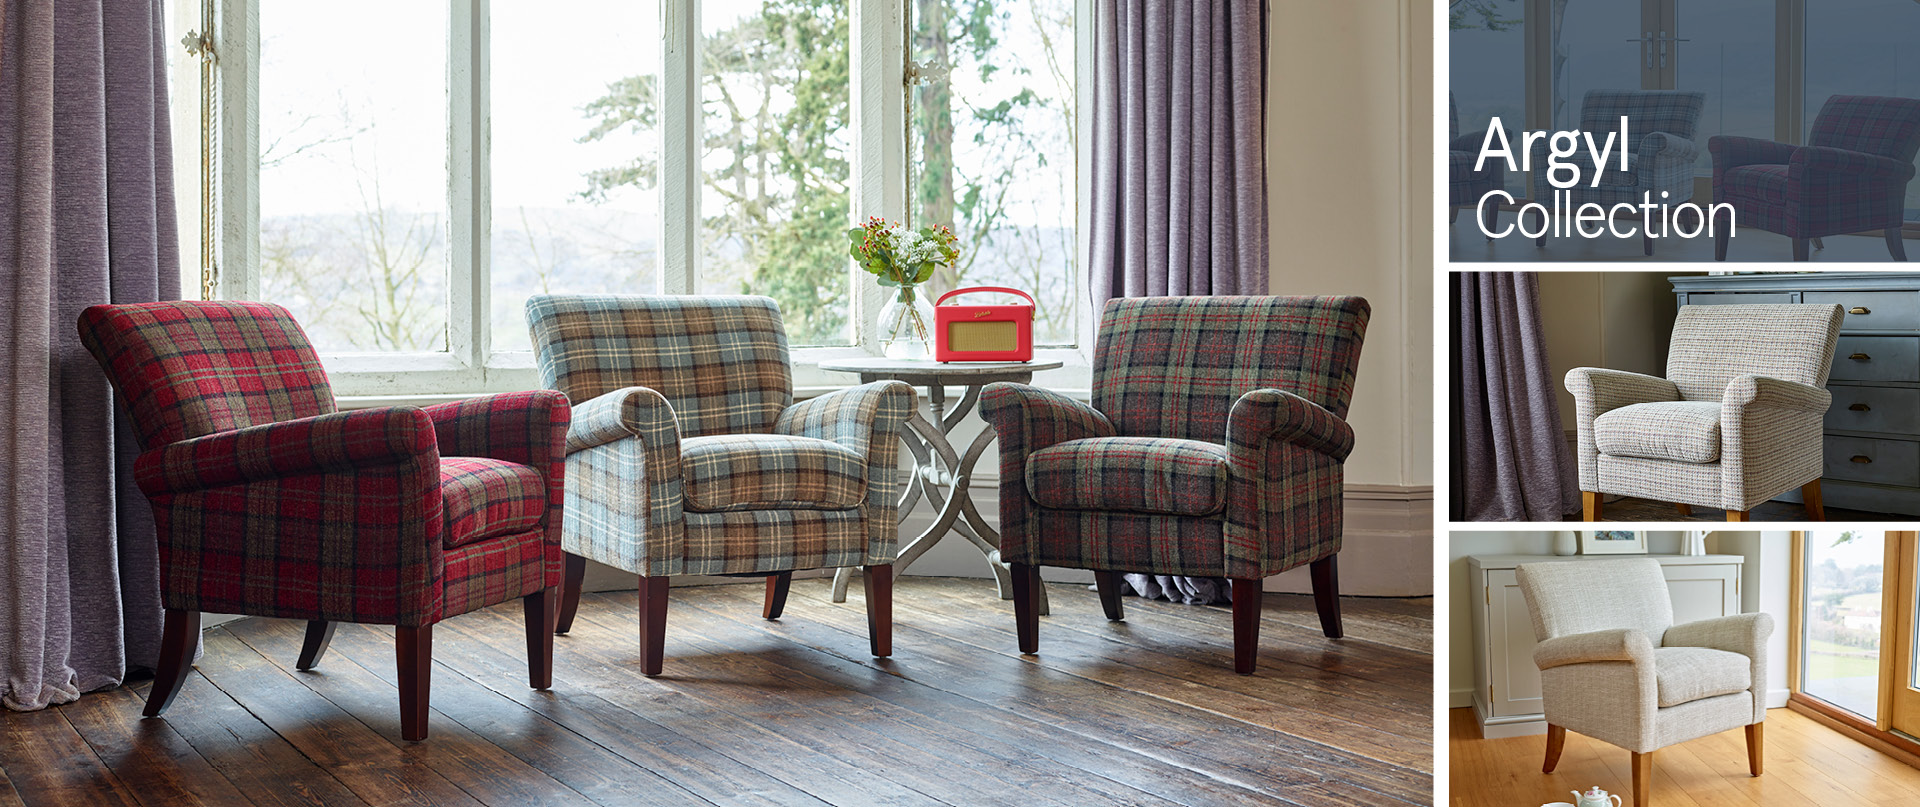 Argyl All Chairs and Footstools Ranges